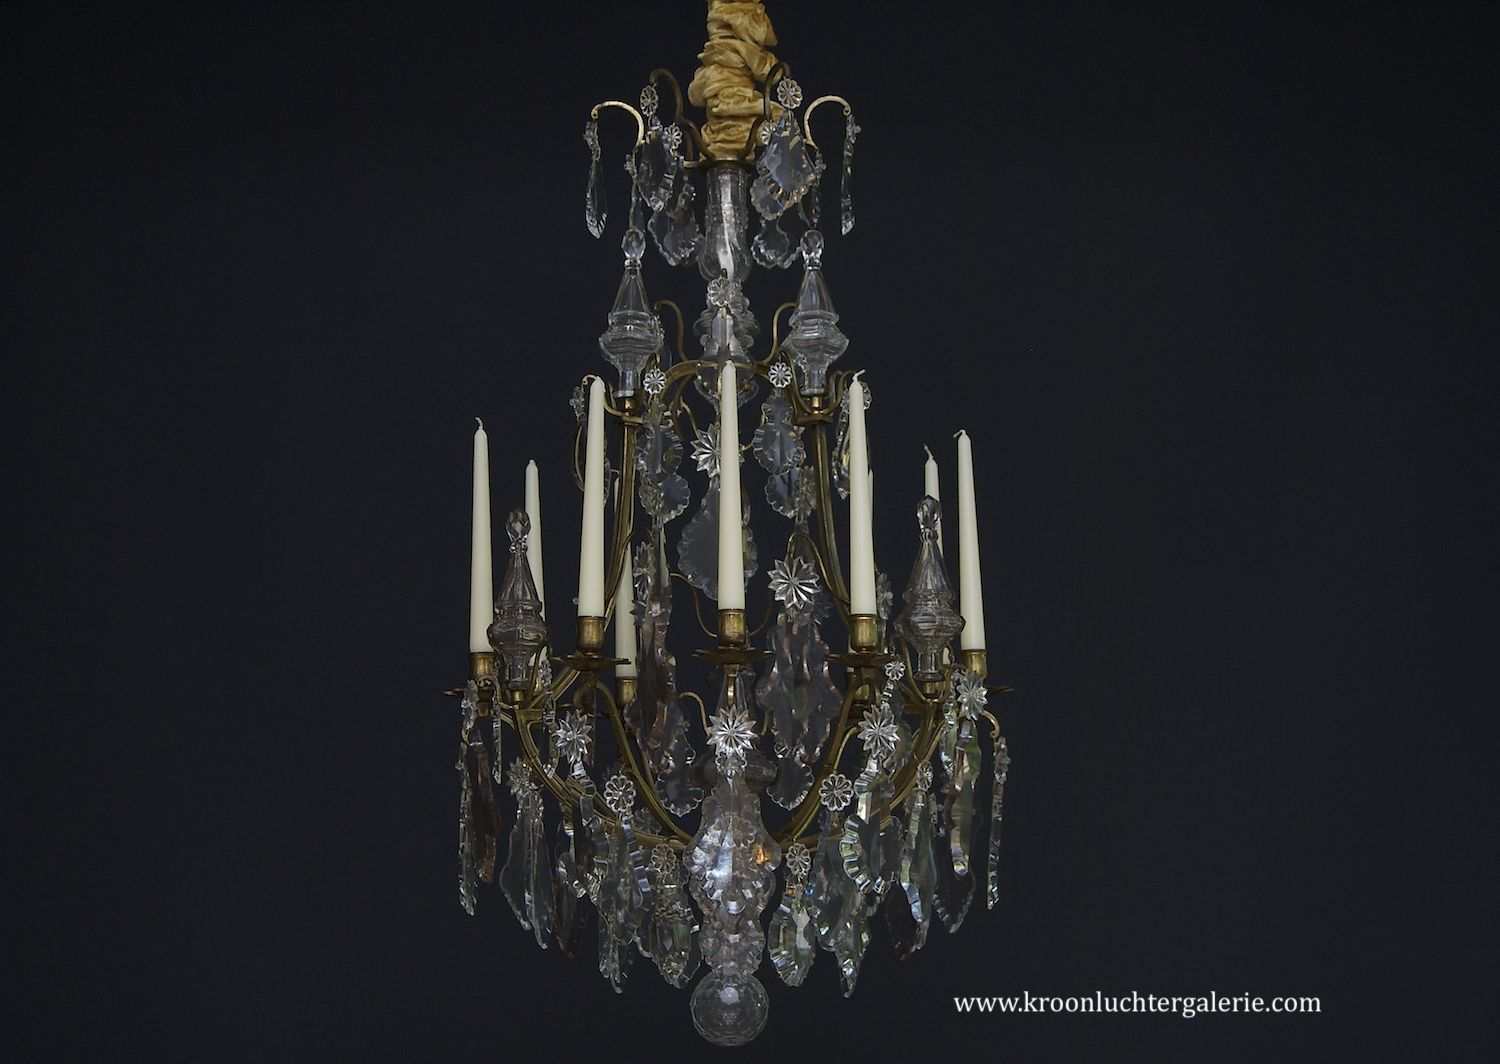 Gilt bronze French chandelier with candles in Louis XV style